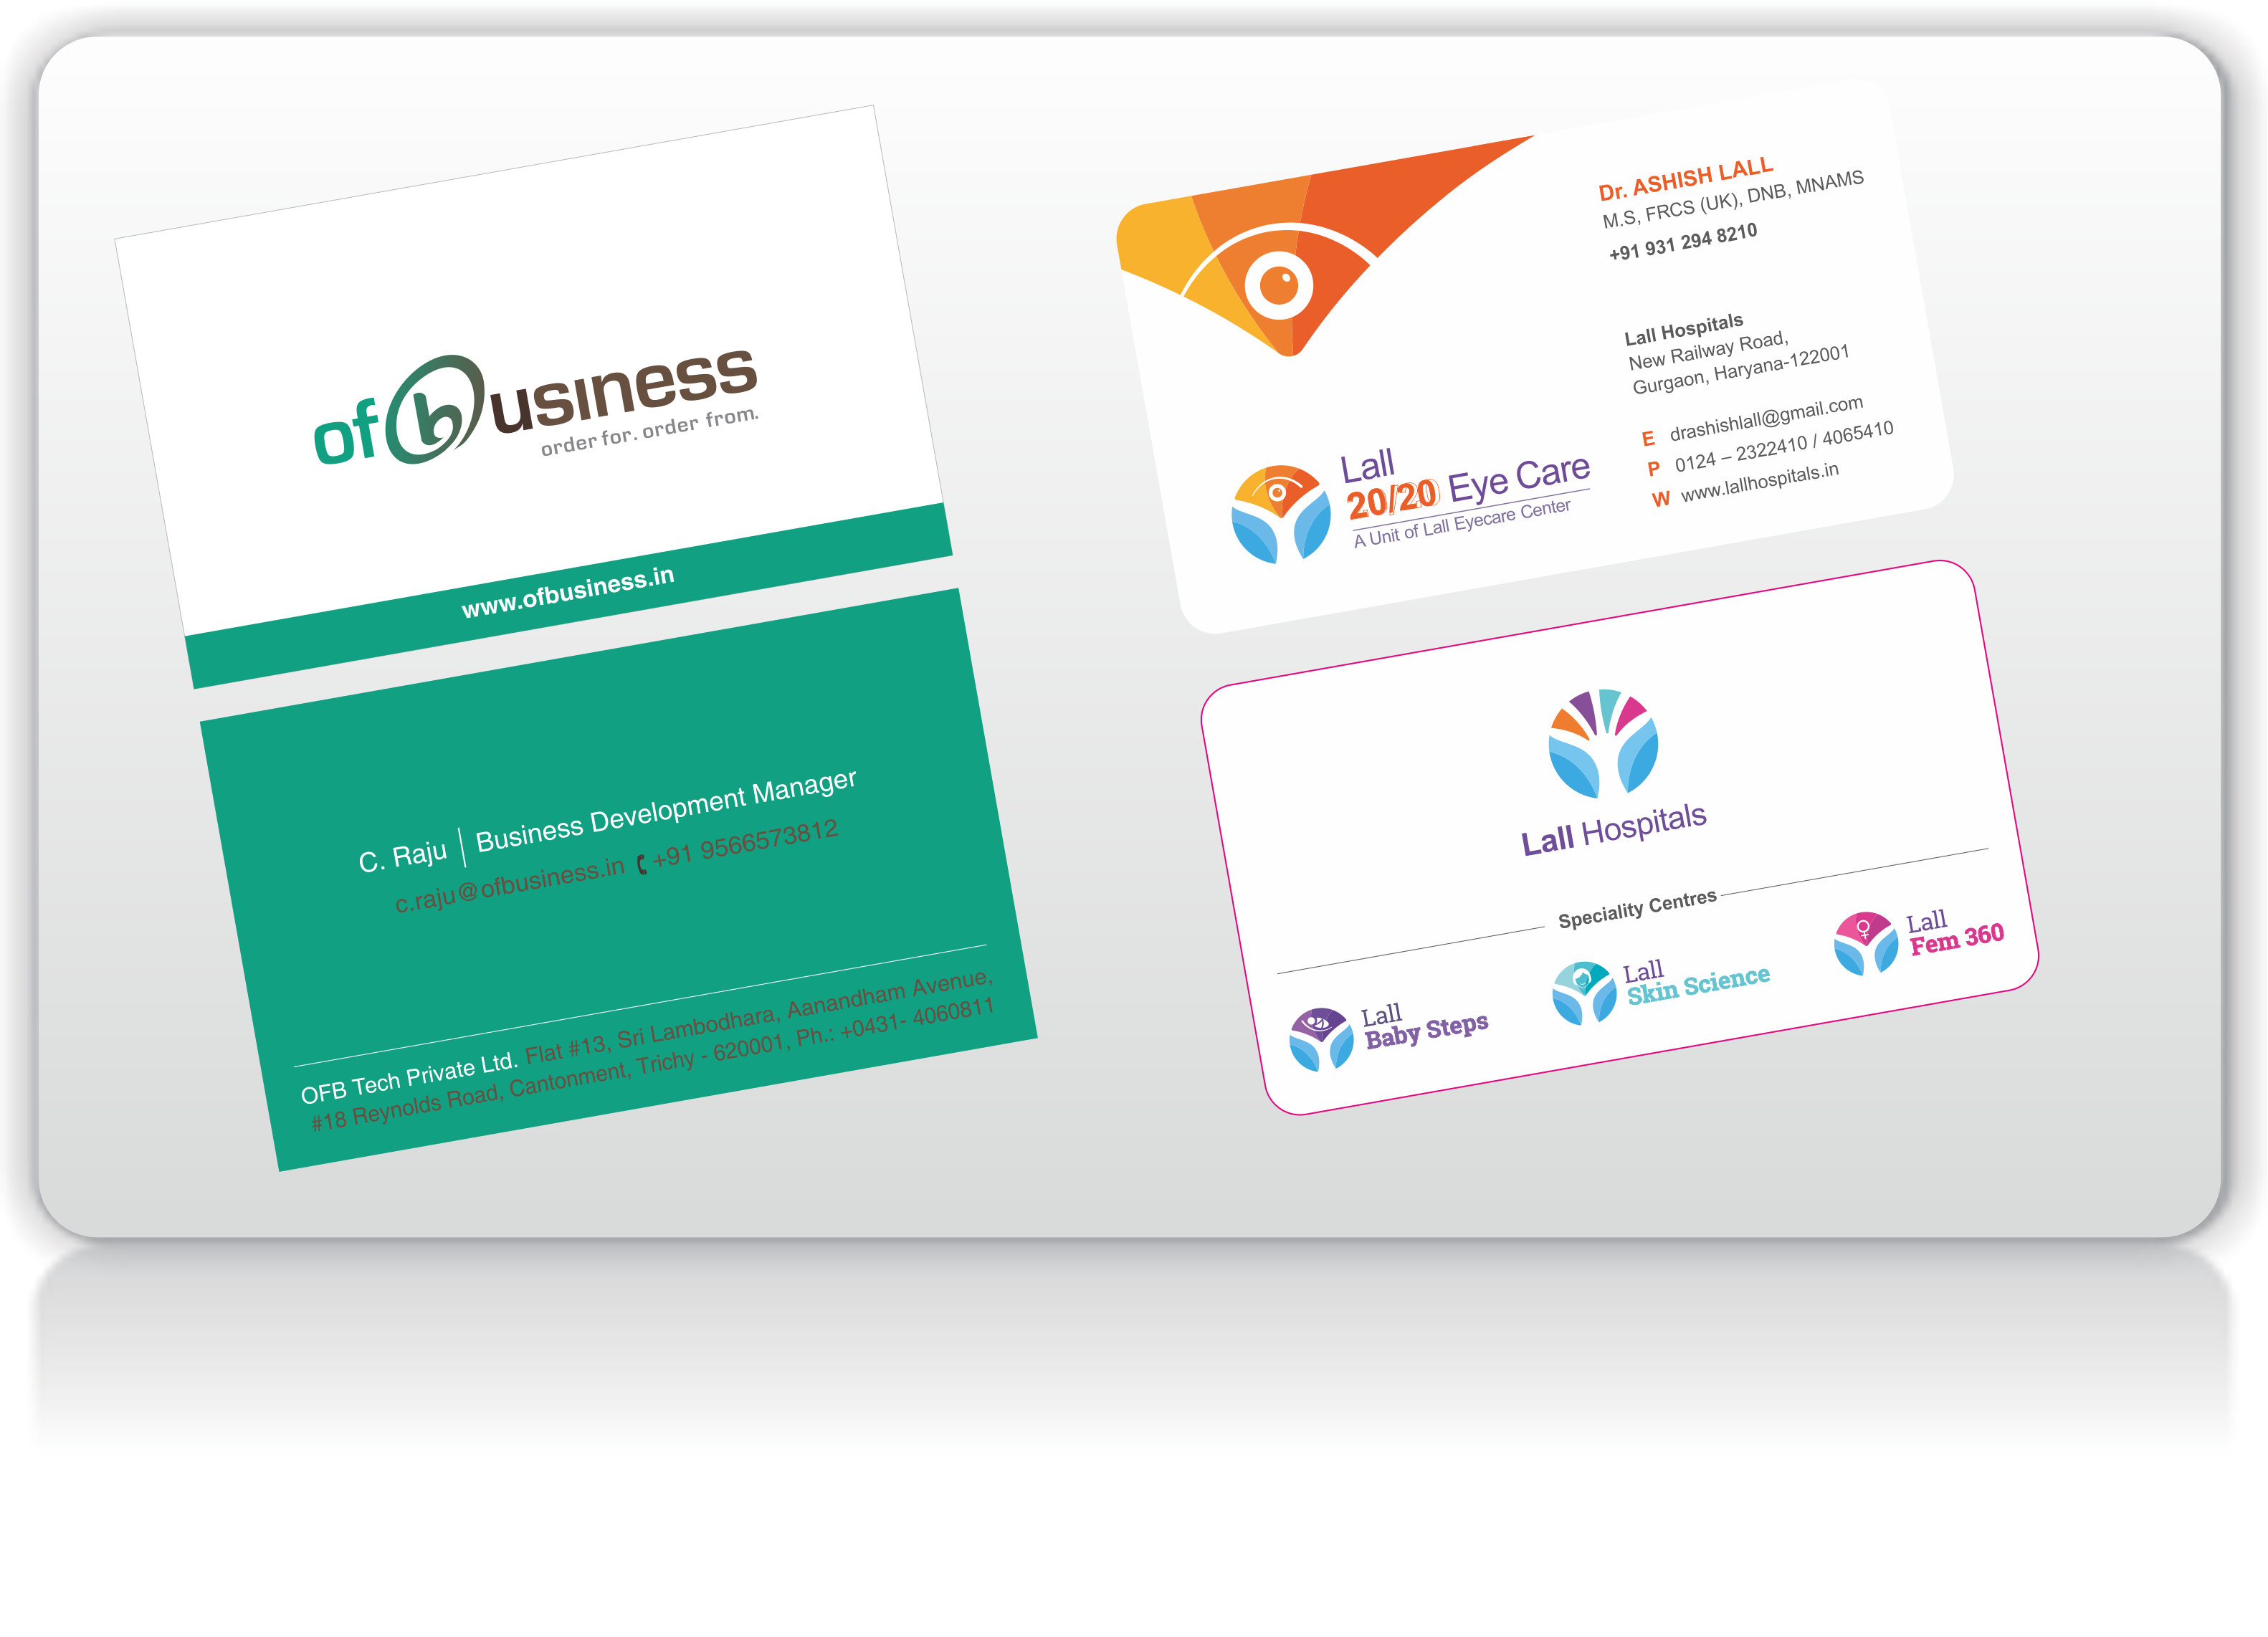 Business Development Manager Business Card Images - Business Card ...